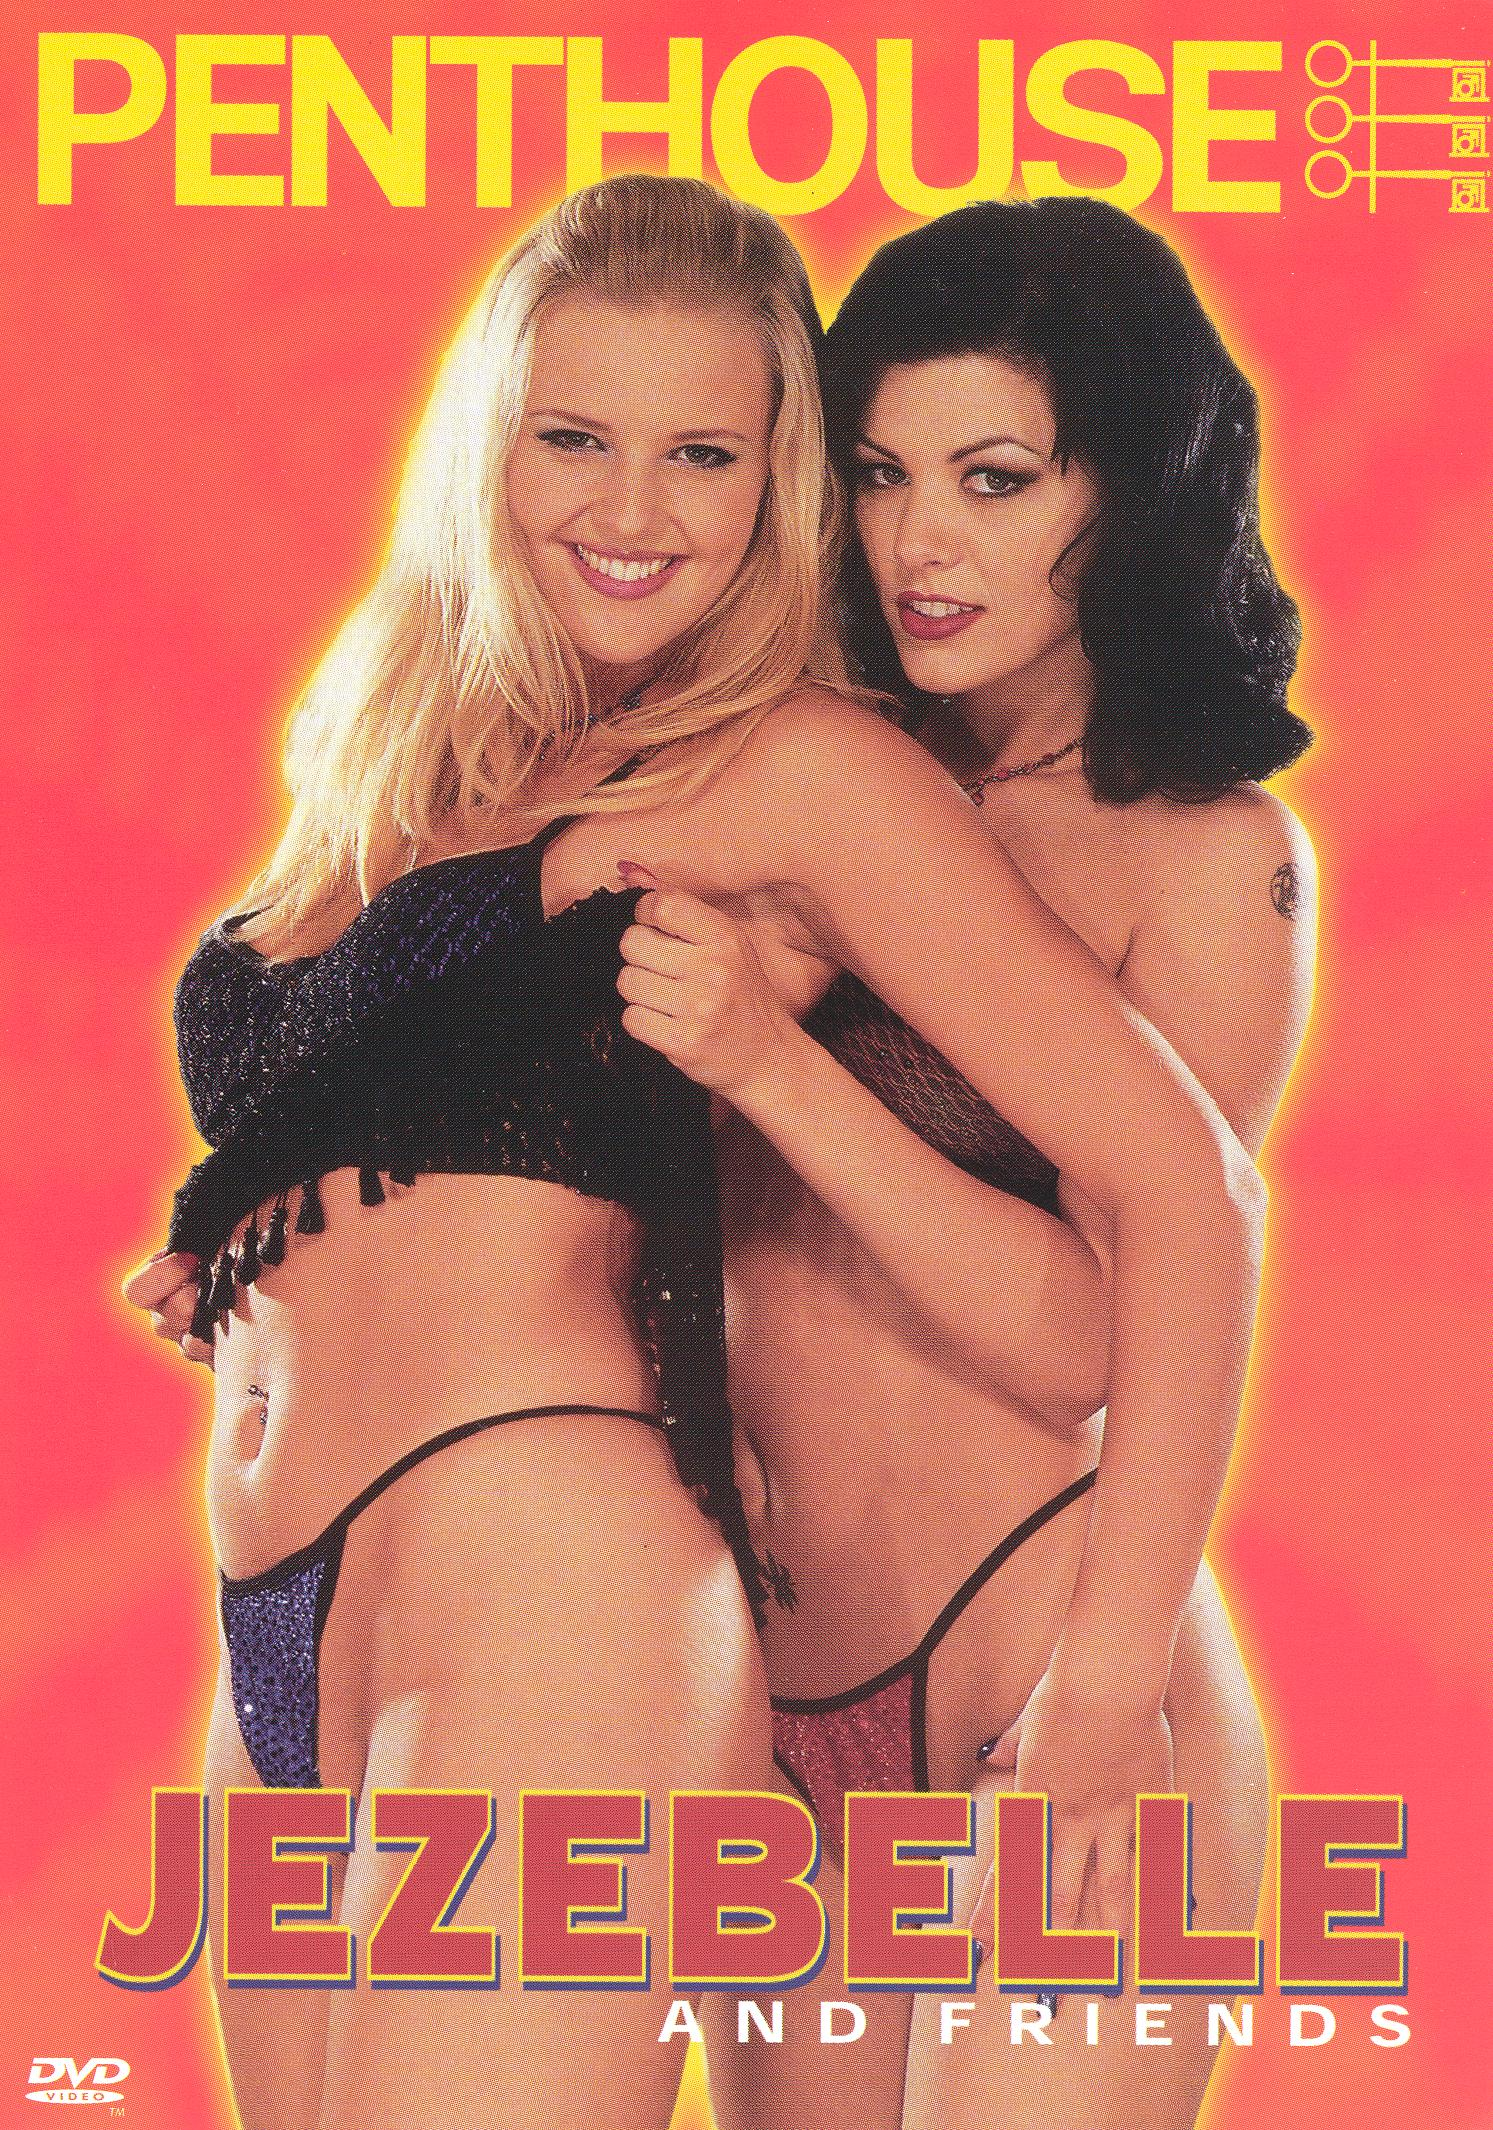 Penthouse: Jezebelle and Friends